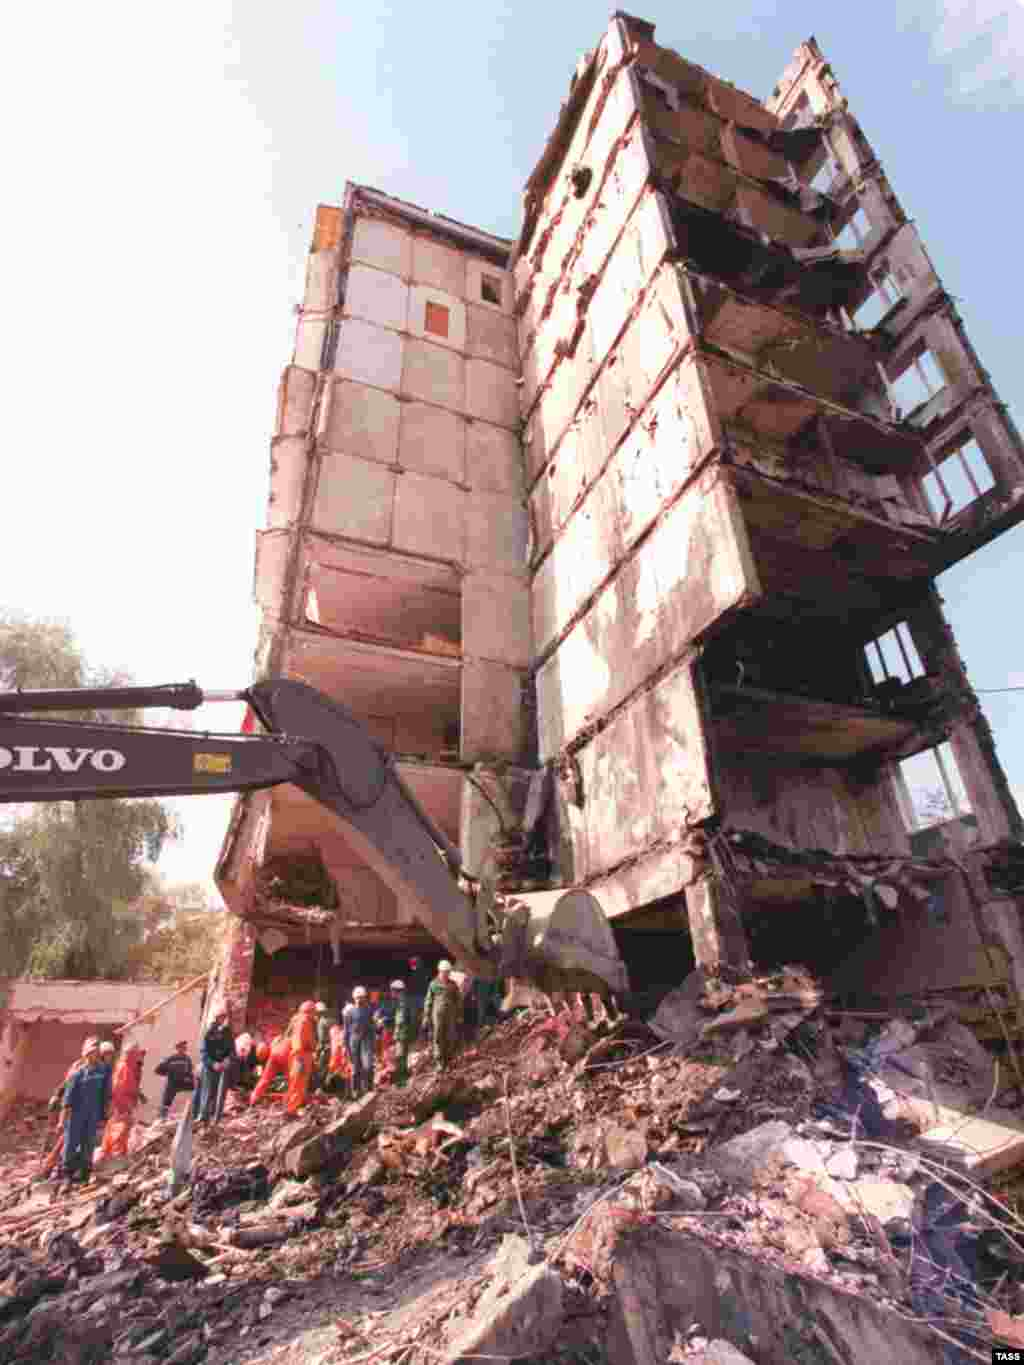 Clean-up operations at the apartment building on Guryanova Street. The blast killed 94 people.